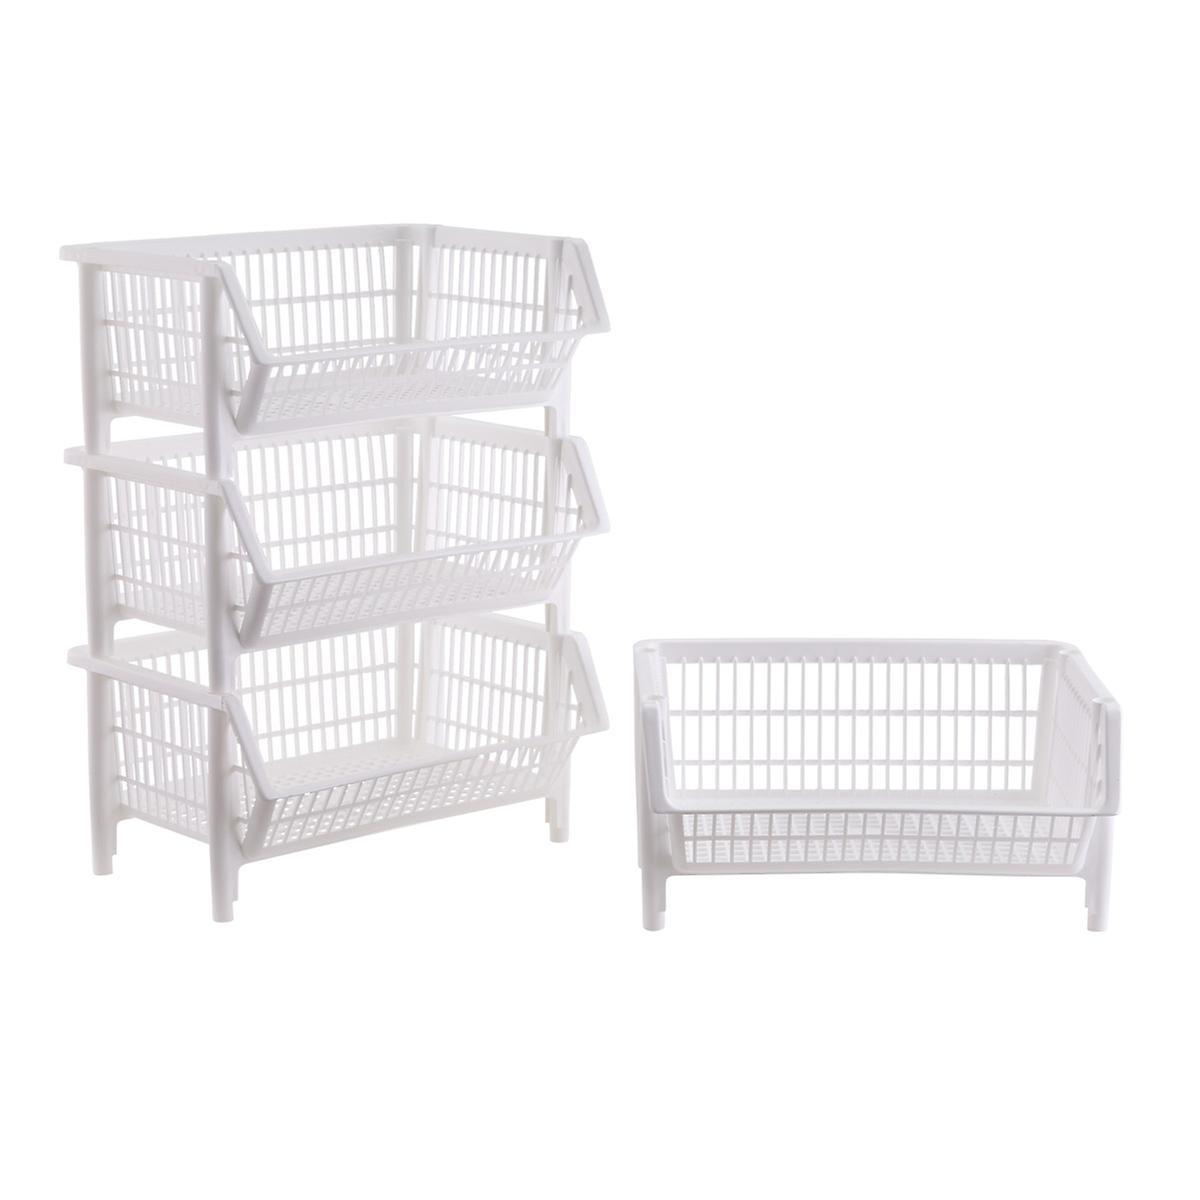 Our White Large Stackable Basket